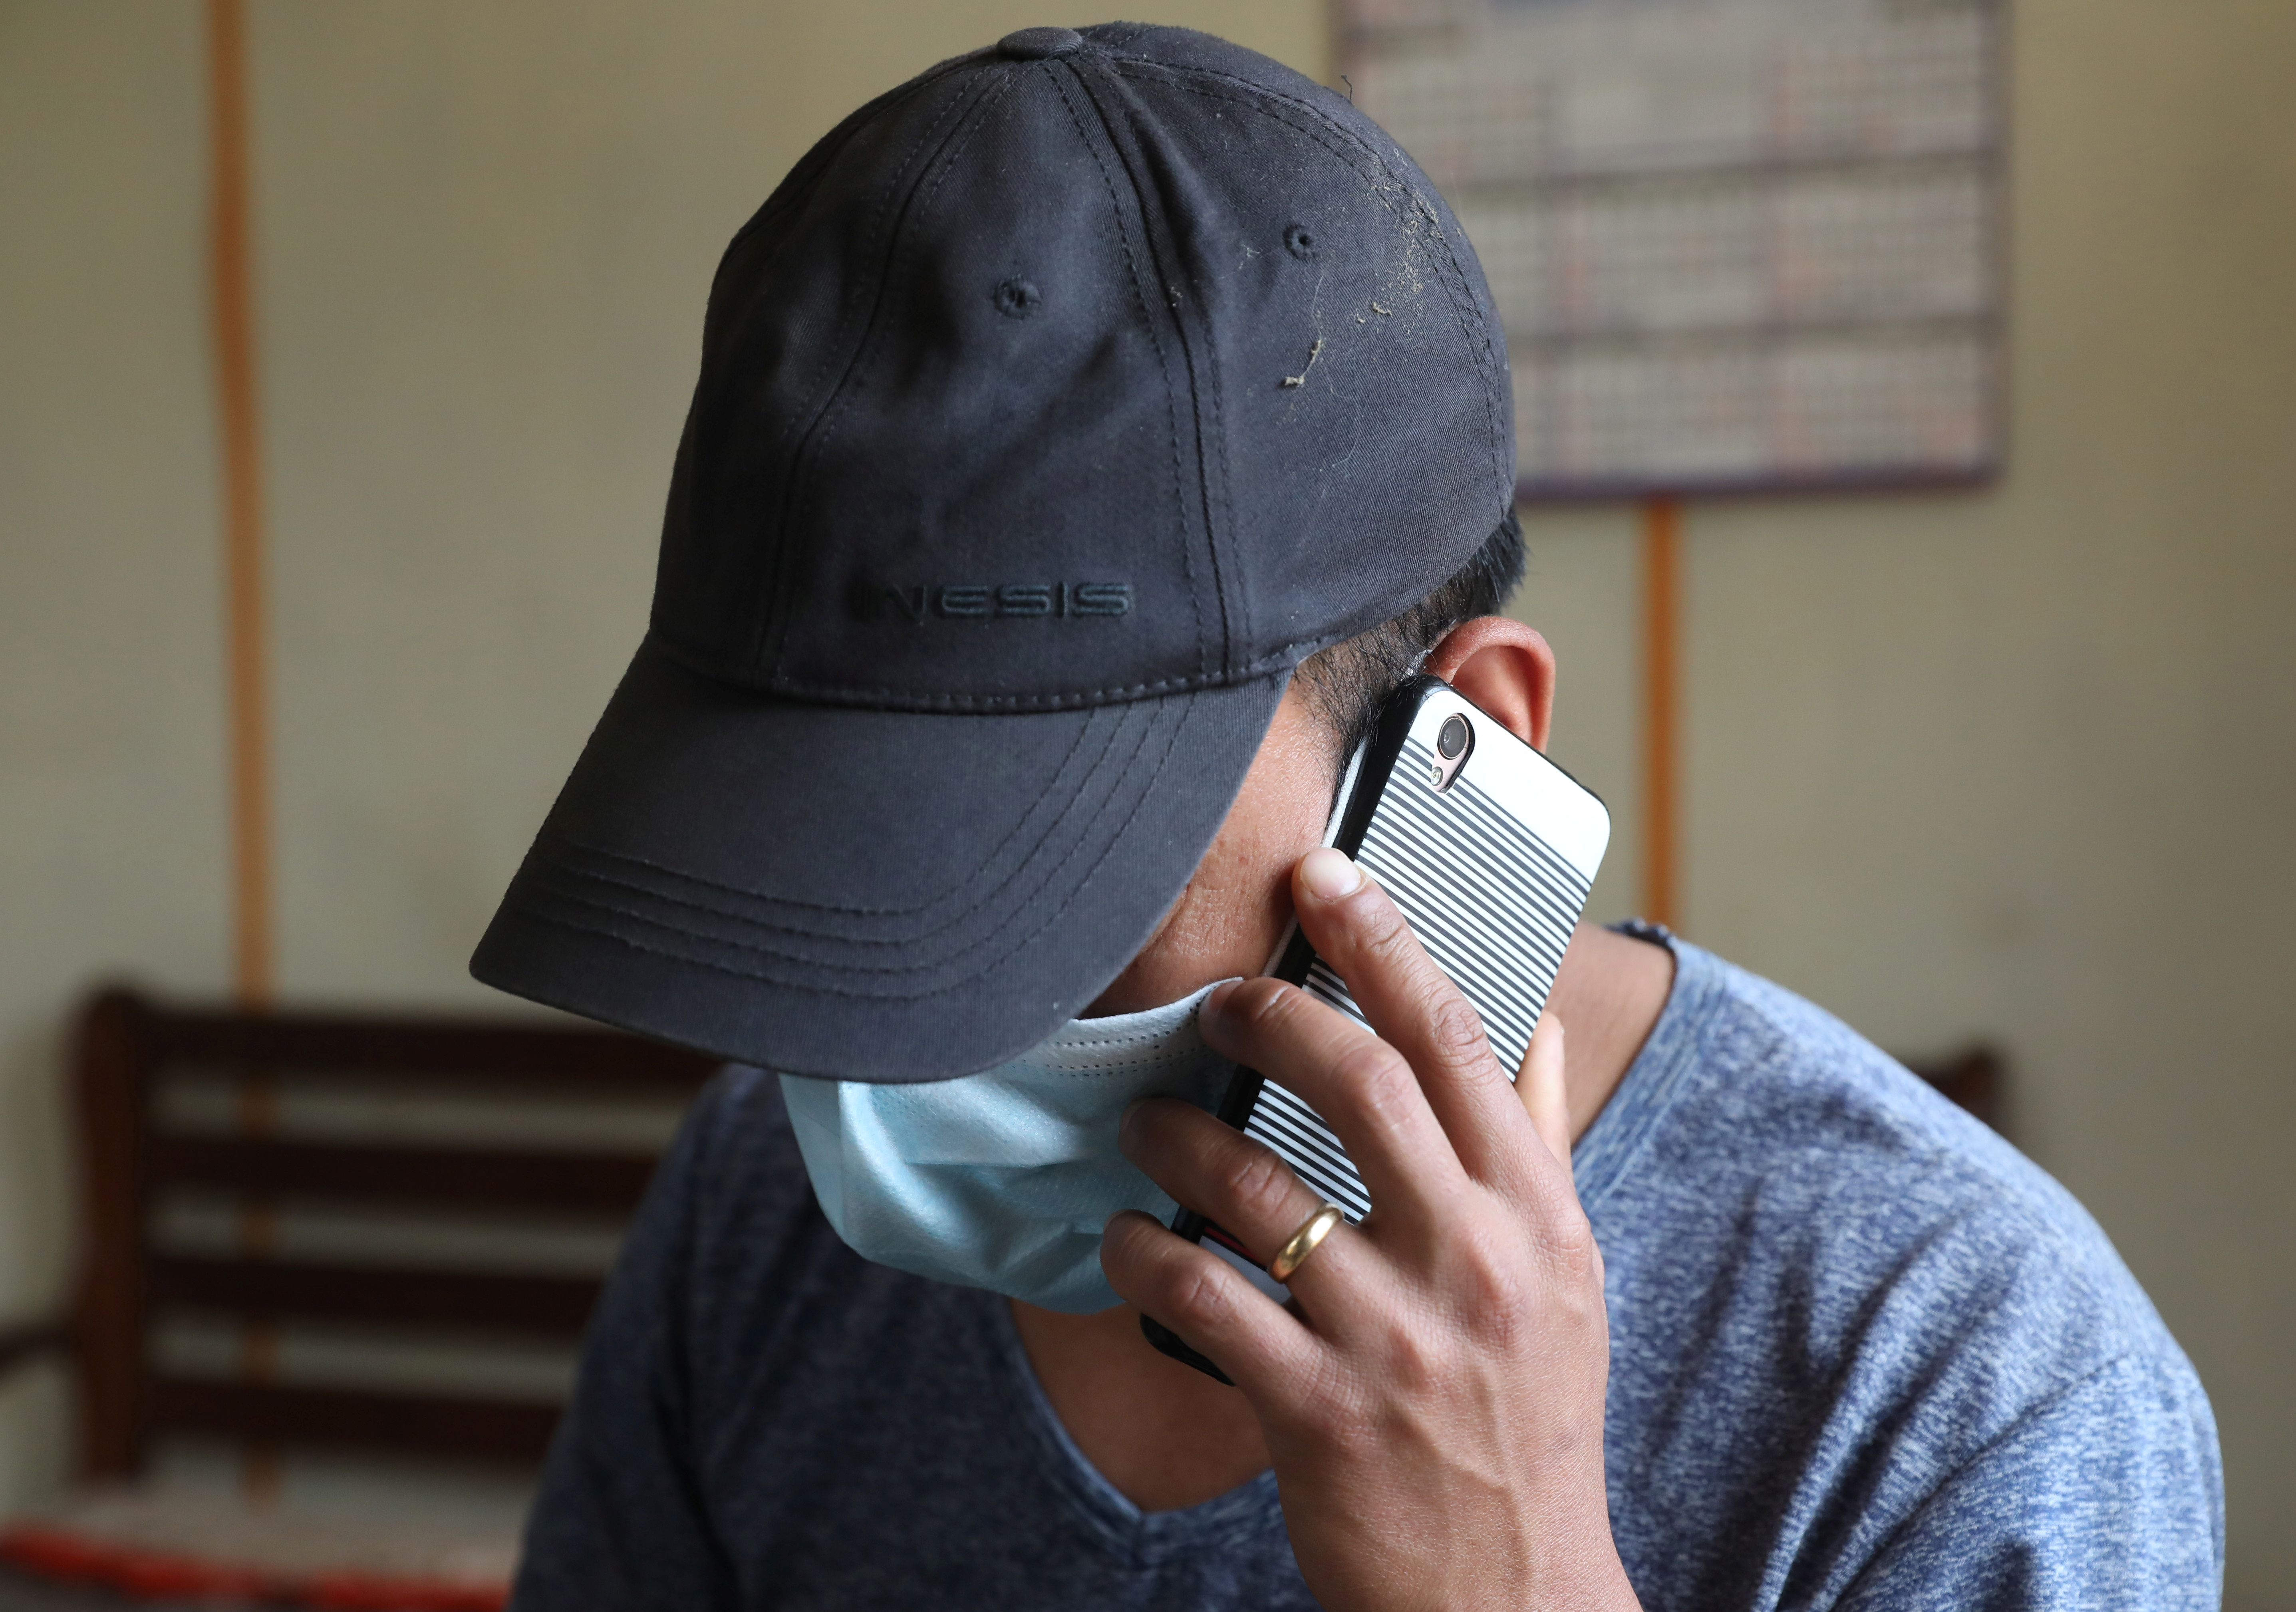 A Myanmar national who said he was a policeman and recently fled to India speaks on his mobile phone at an undisclosed location in India's northeastern state of Mizoram, near the India-Myanmar border, March 15, 2021.